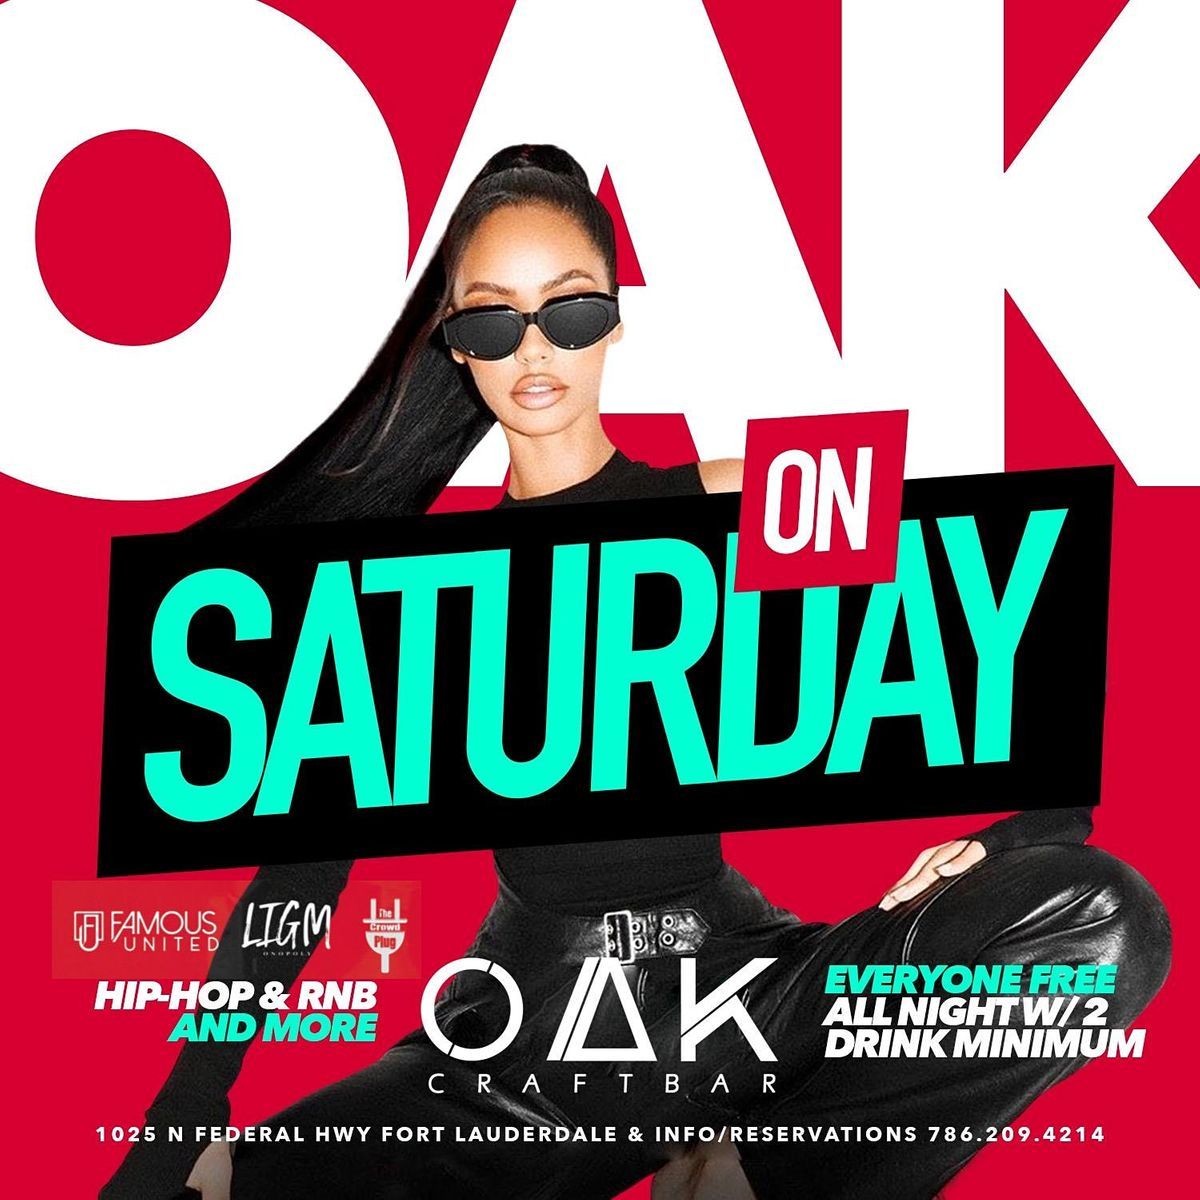 OAK ON SATURDAYS   Event in Fort Lauderdale   AllEvents.in